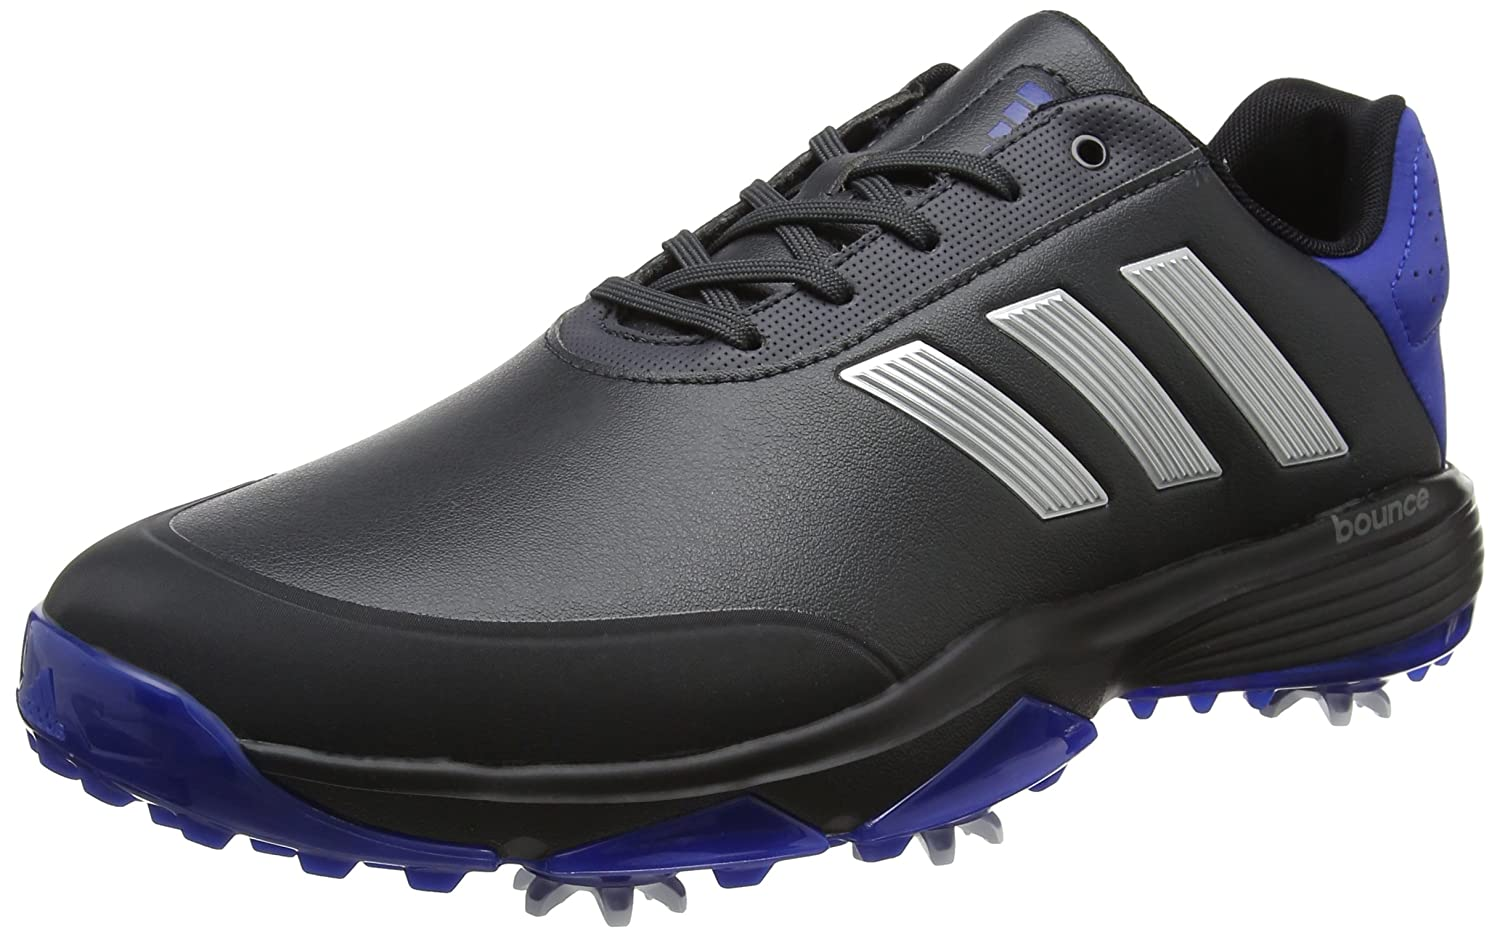 low priced 2dbf6 e4285 Adidas Adipower Bounce WD Scarpe da golf, UOMO, Nero  Grigio  Blu, 46  Amazon.it Sport e tempo libero